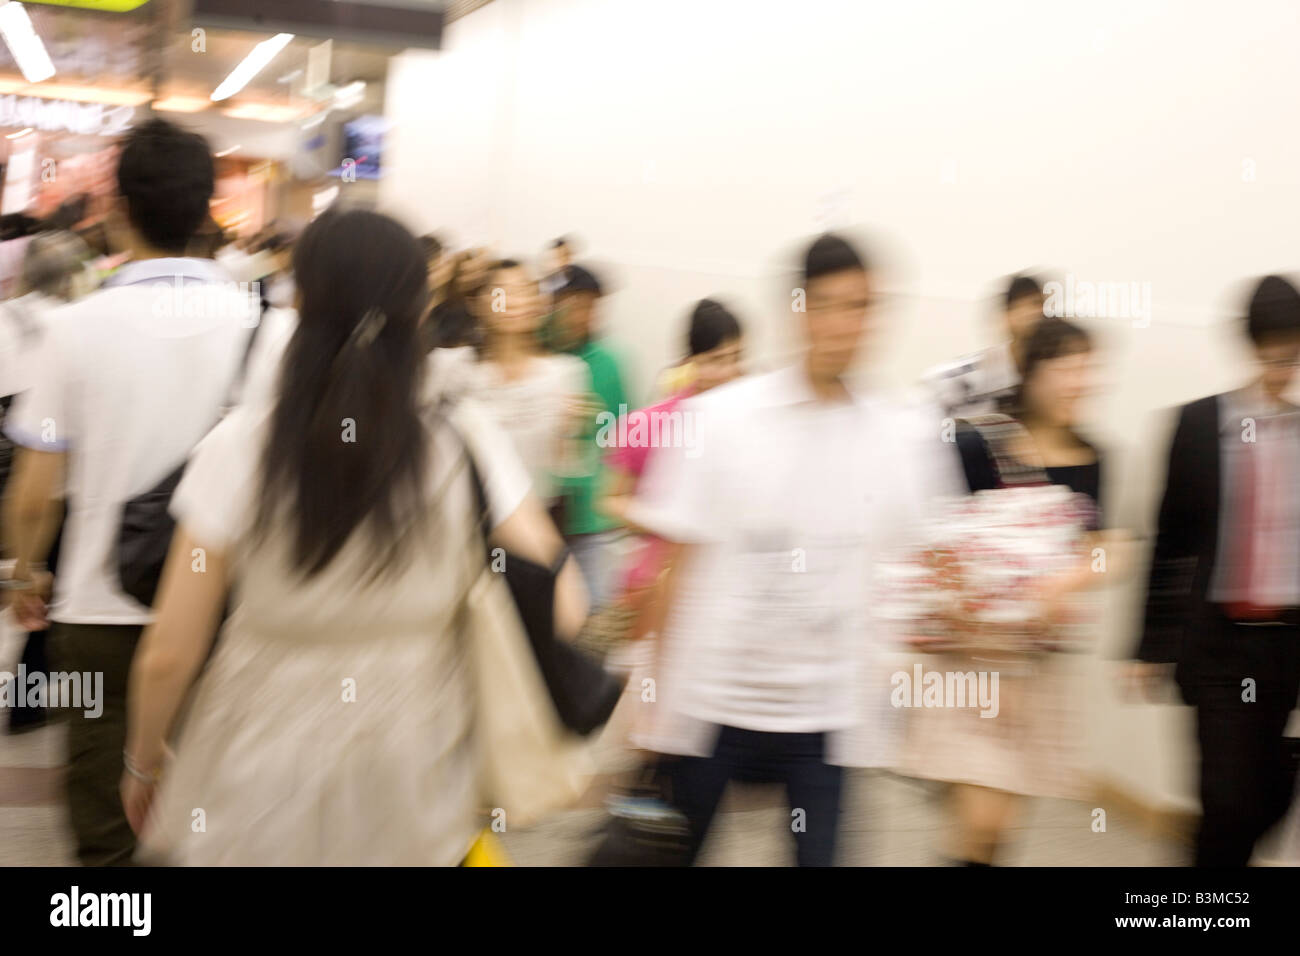 japanese commuters walking through subway station, rush hour, shinjuku, Tokyo Japan - Stock Image